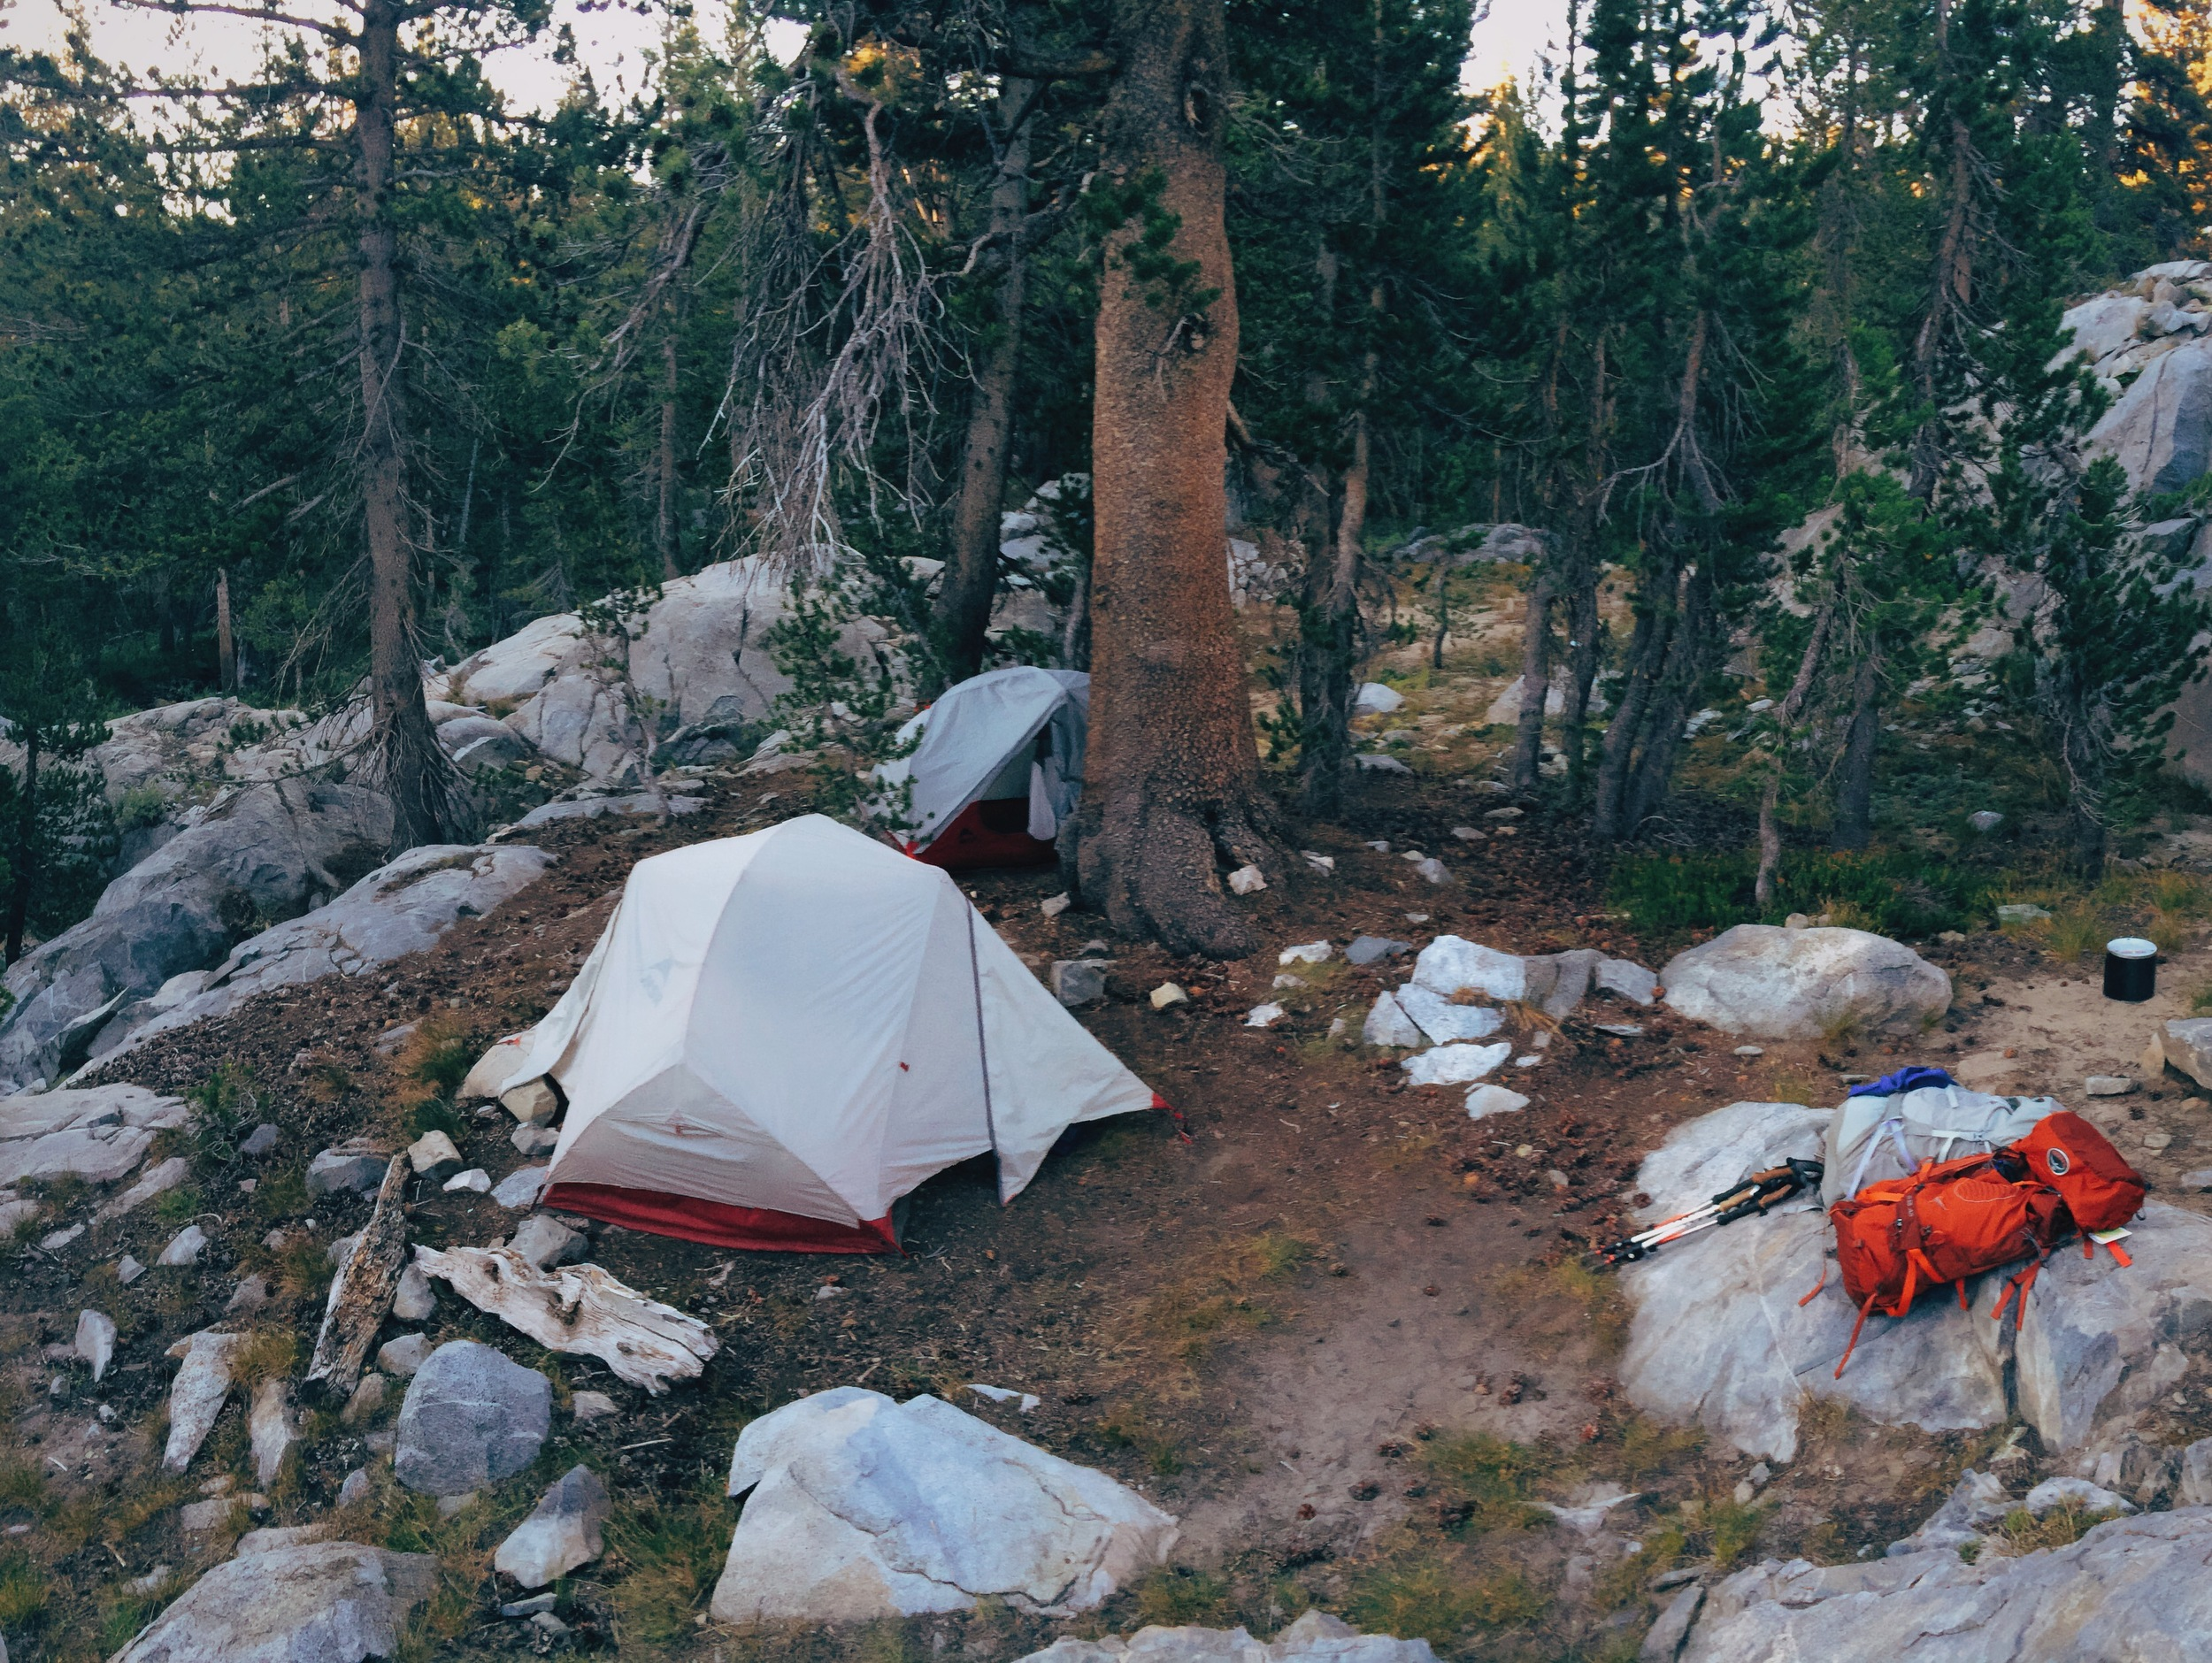 Day 2: Camping near Waugh Lake outlet.